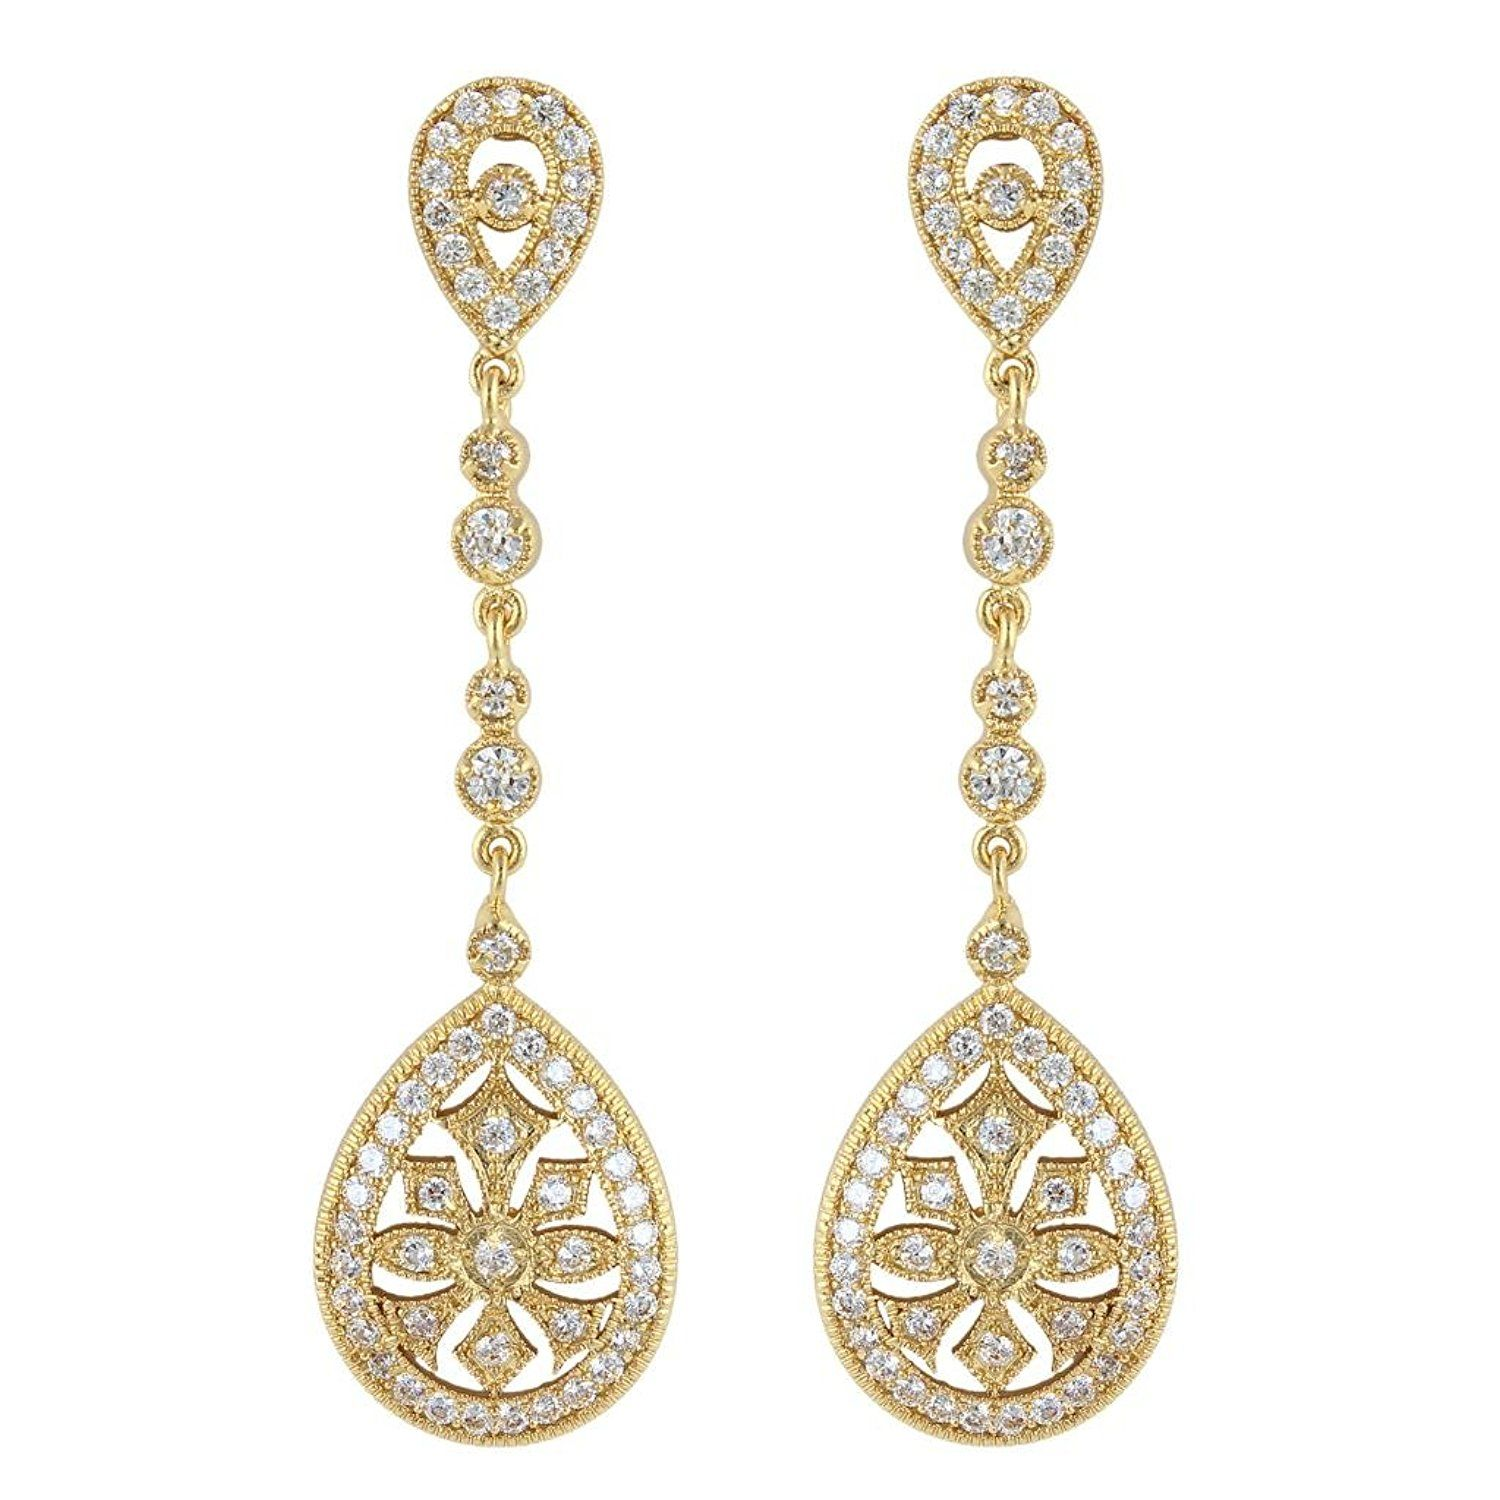 Ever faith art deco classical gatsby inspired pave cubic zirconia ever faith art deco classical gatsby inspired pave cubic zirconia chandelier earrings gold tone arubaitofo Images